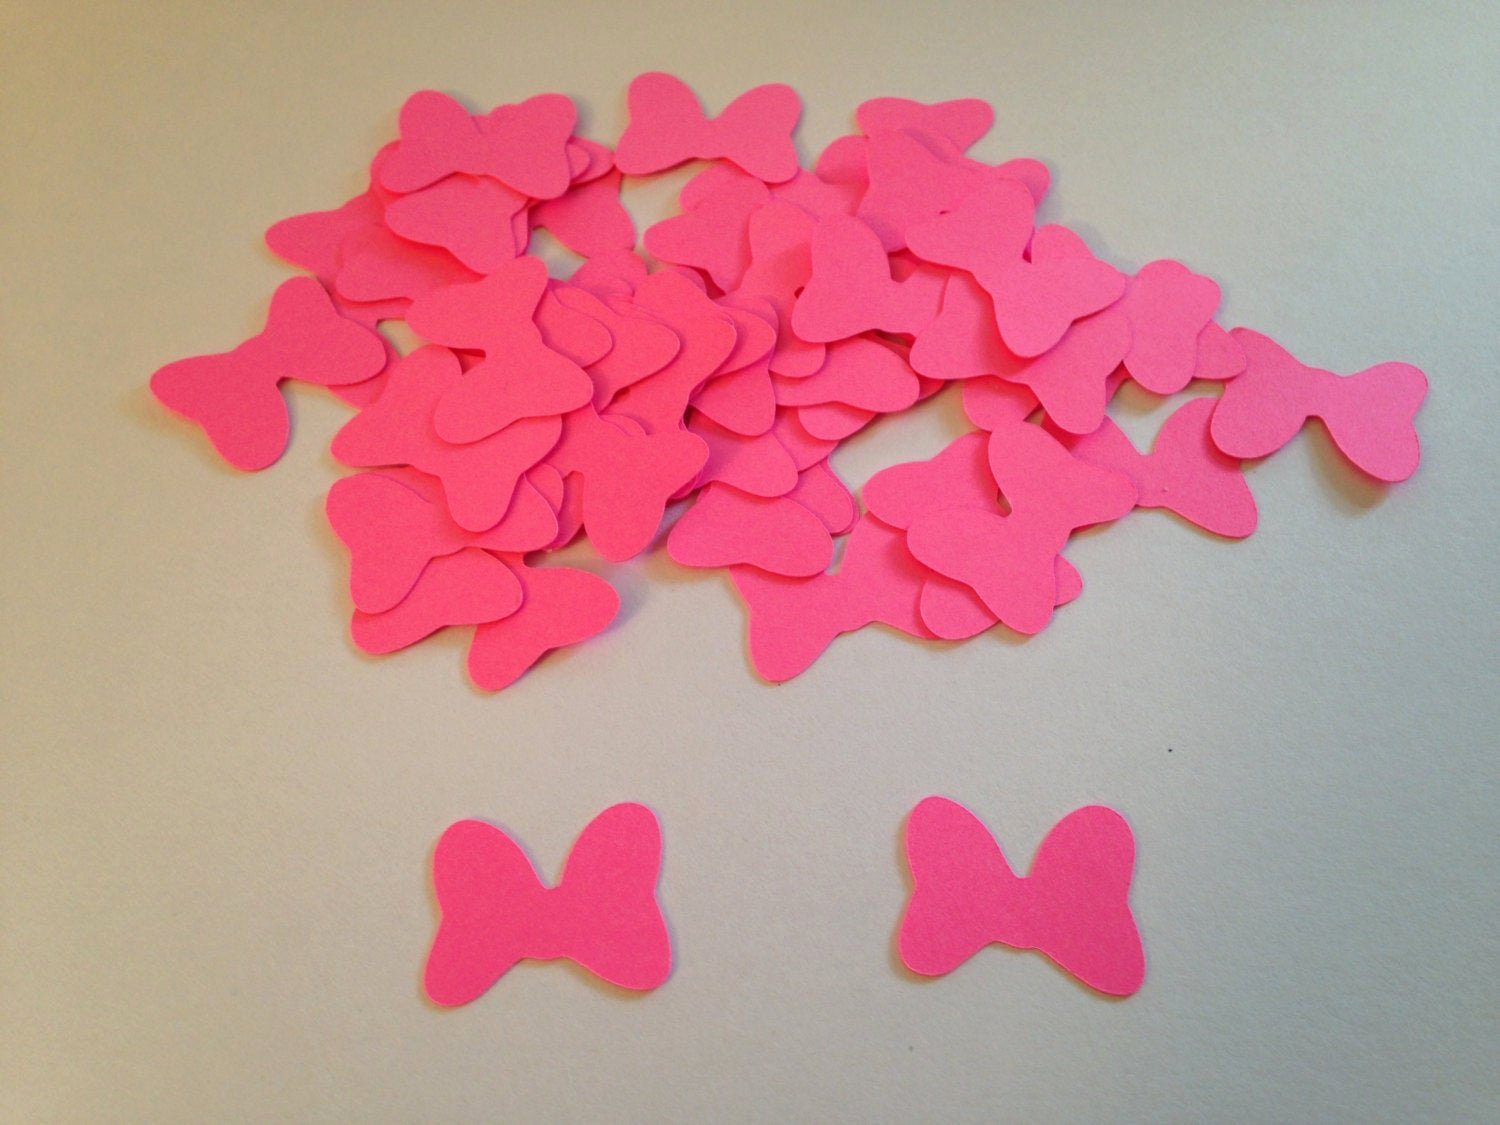 Minnie Mouse Bow Cut Out Beautiful 100 Hot Pink Minnie Mouse Bow Die Cut Punch Cutout Confetti